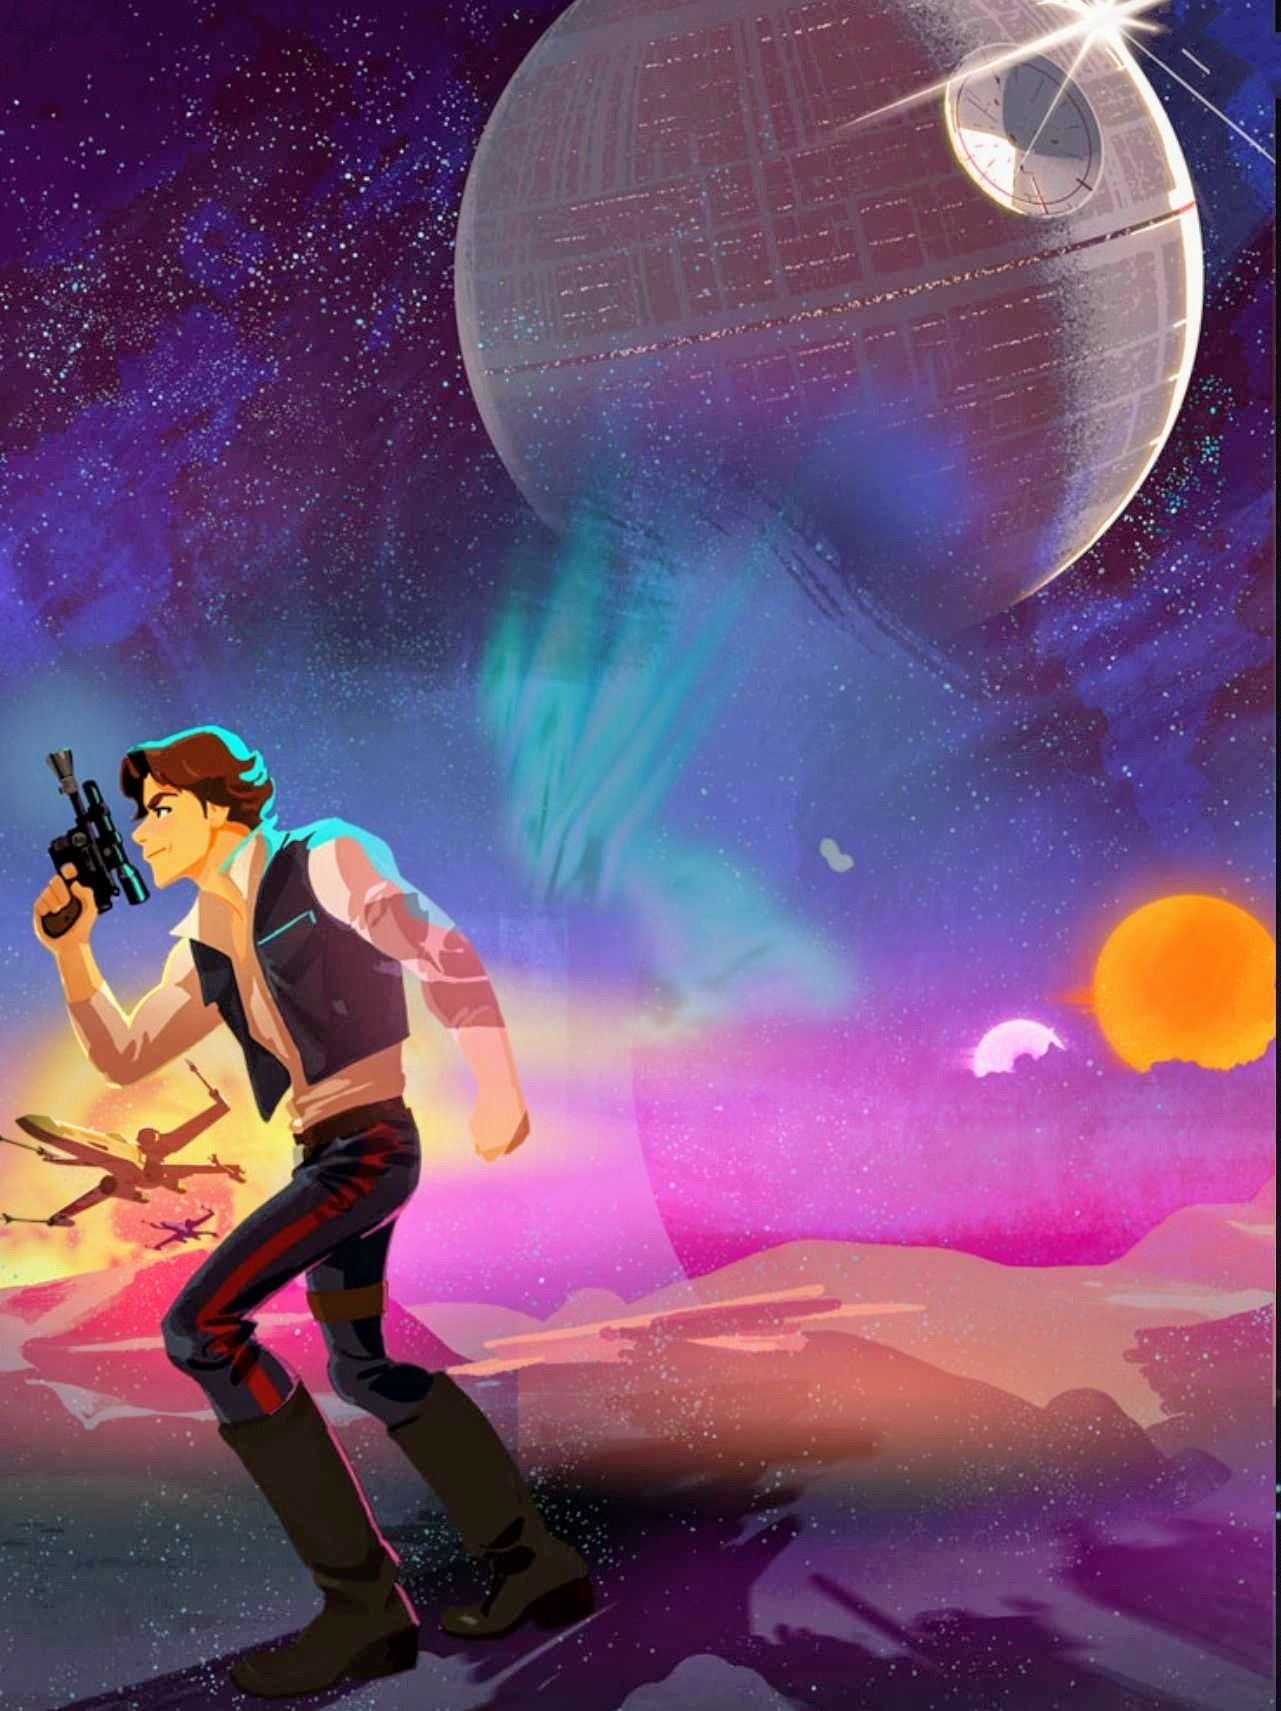 Cool Looking Artwork From The New Star Wars Animated Series Galaxy Of Adventures They Re Really Short Cl Star Wars Wallpaper Star Wars Awesome Star Wars Ships